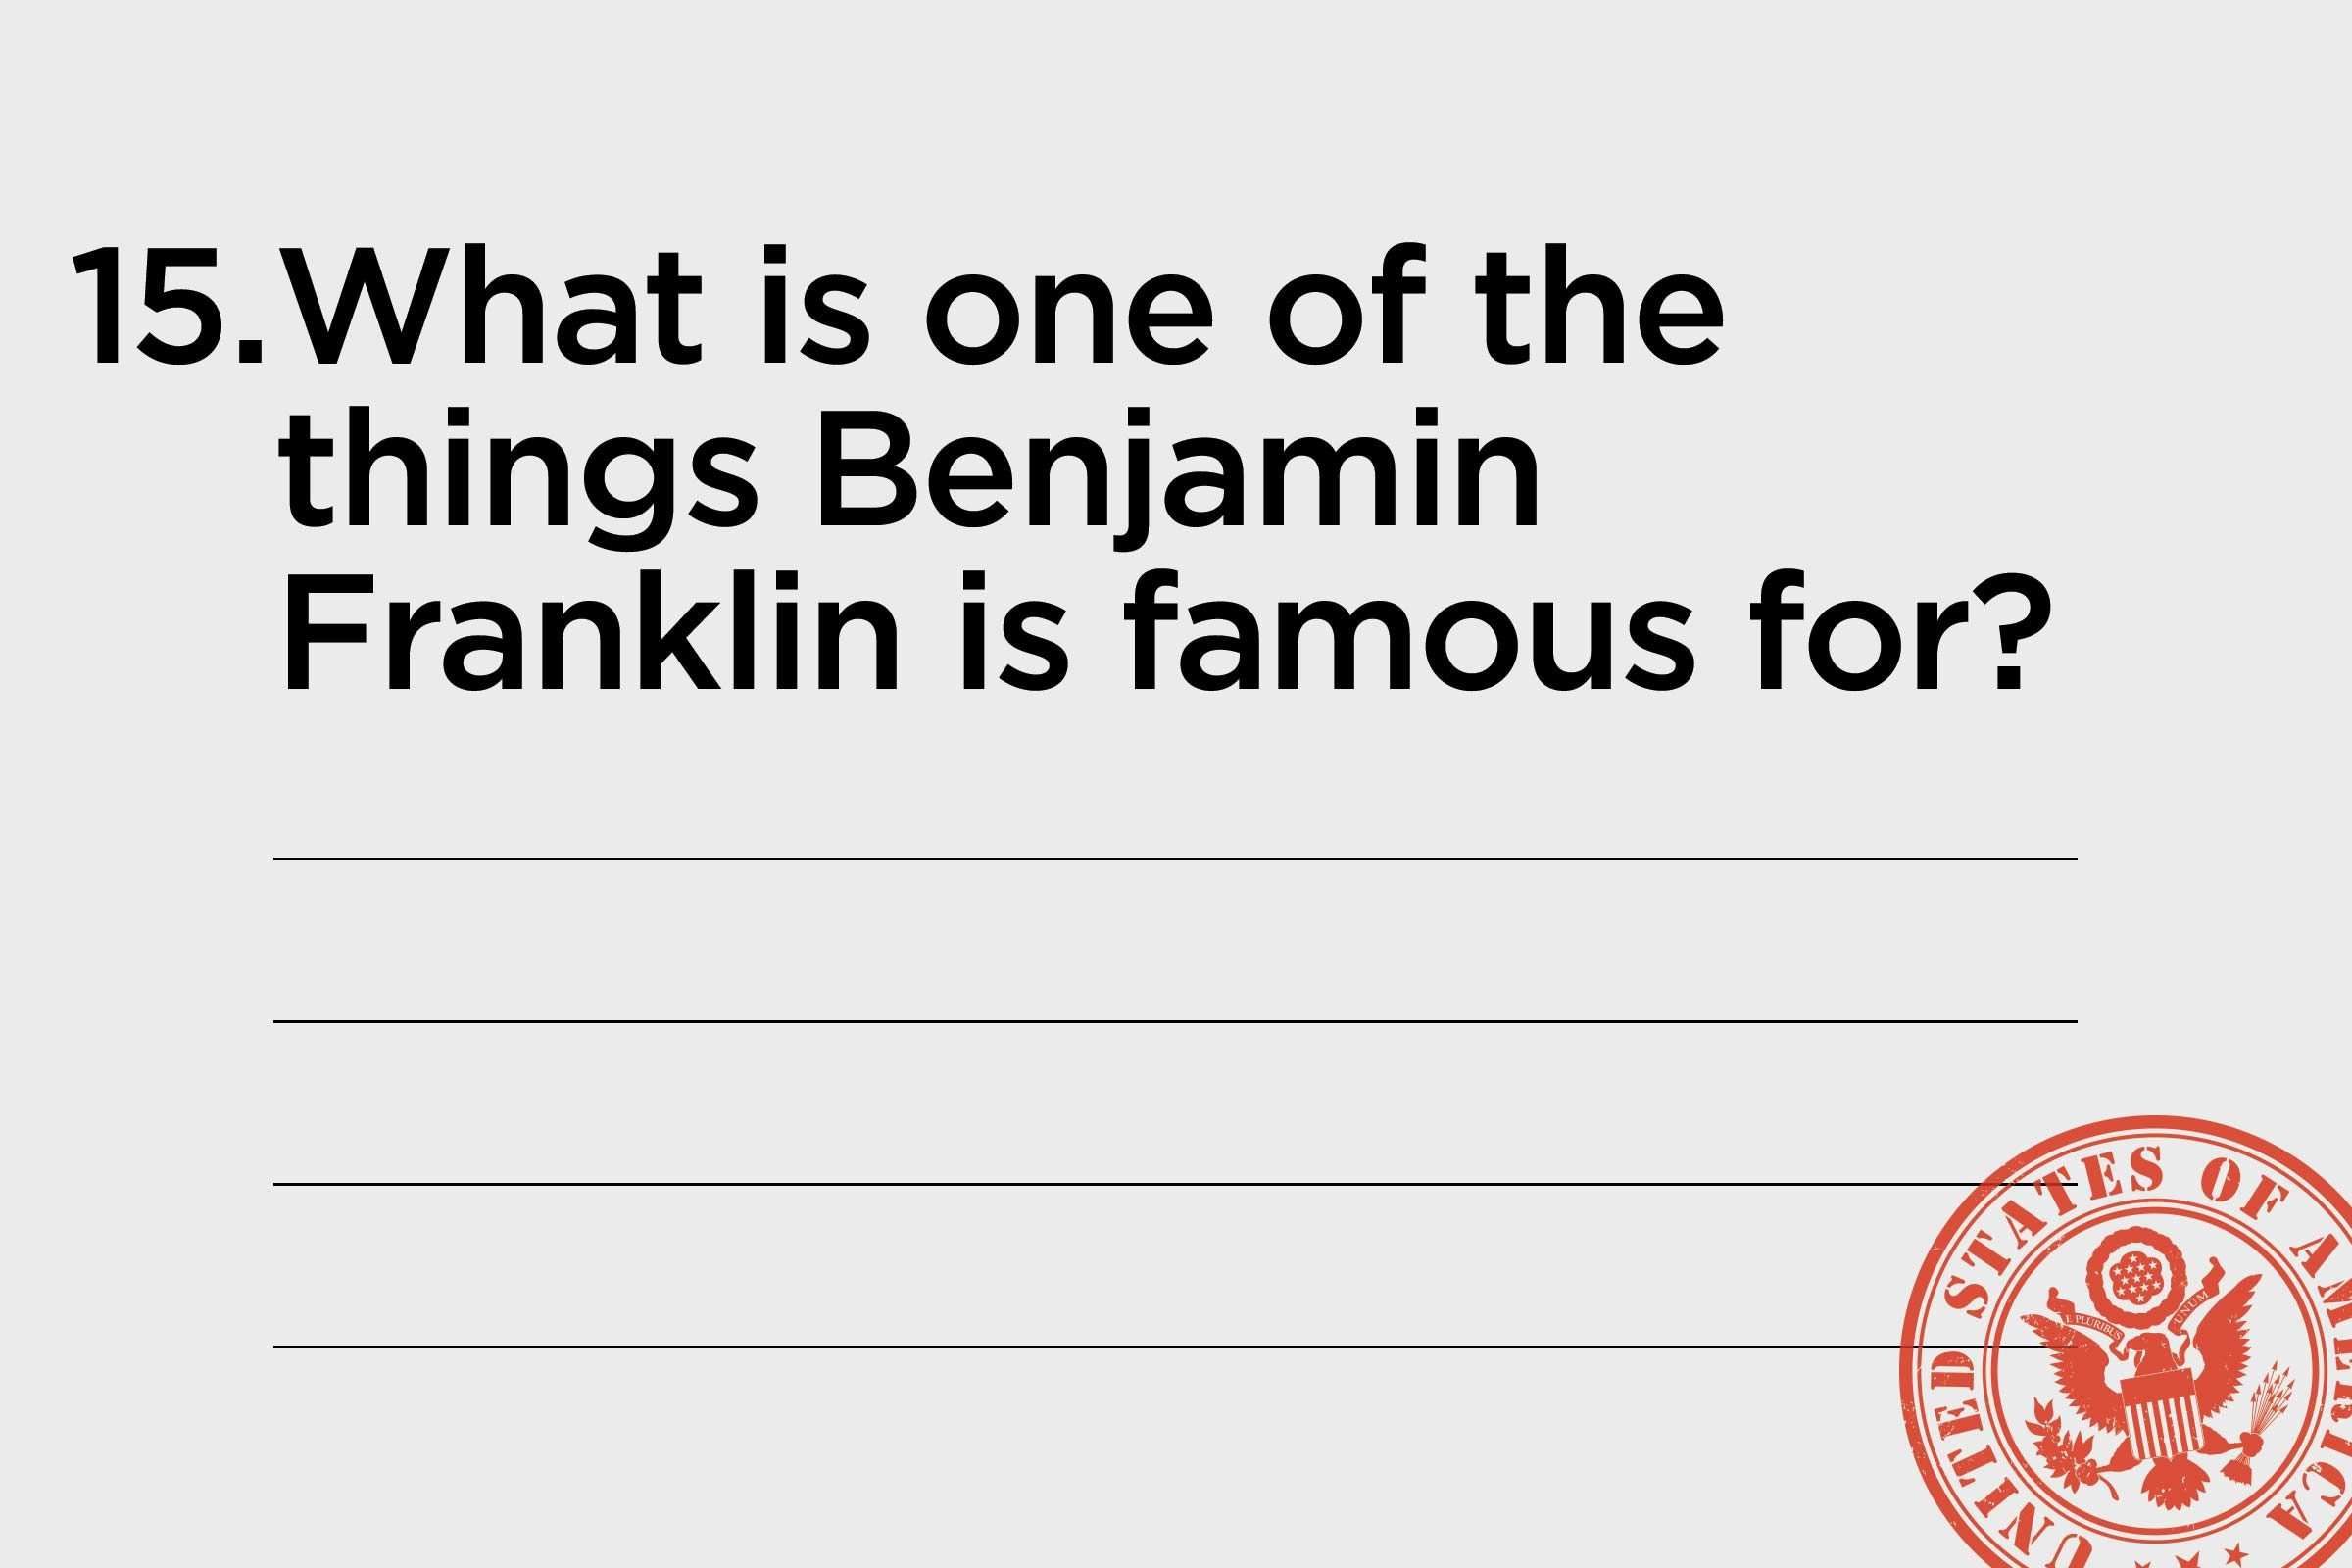 ben franklin is famous for